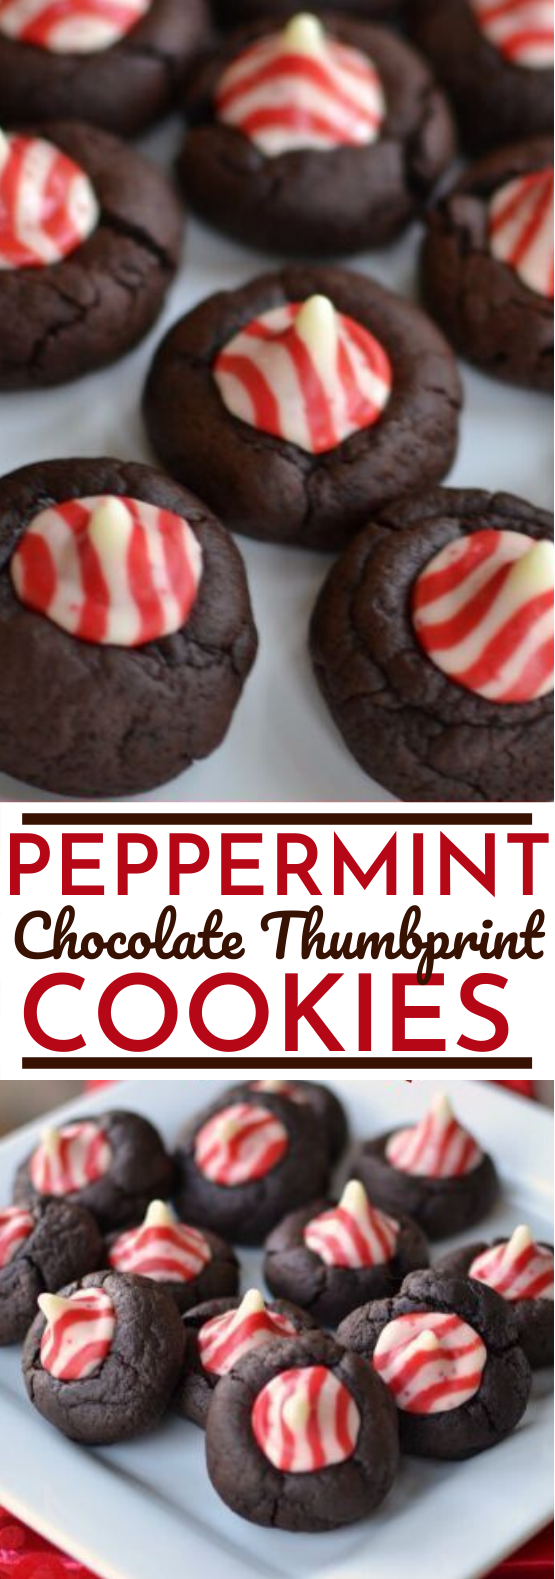 Peppermint Chocolate Thumbprint Cookies #cookies #recipe #christmas #desserts #baking